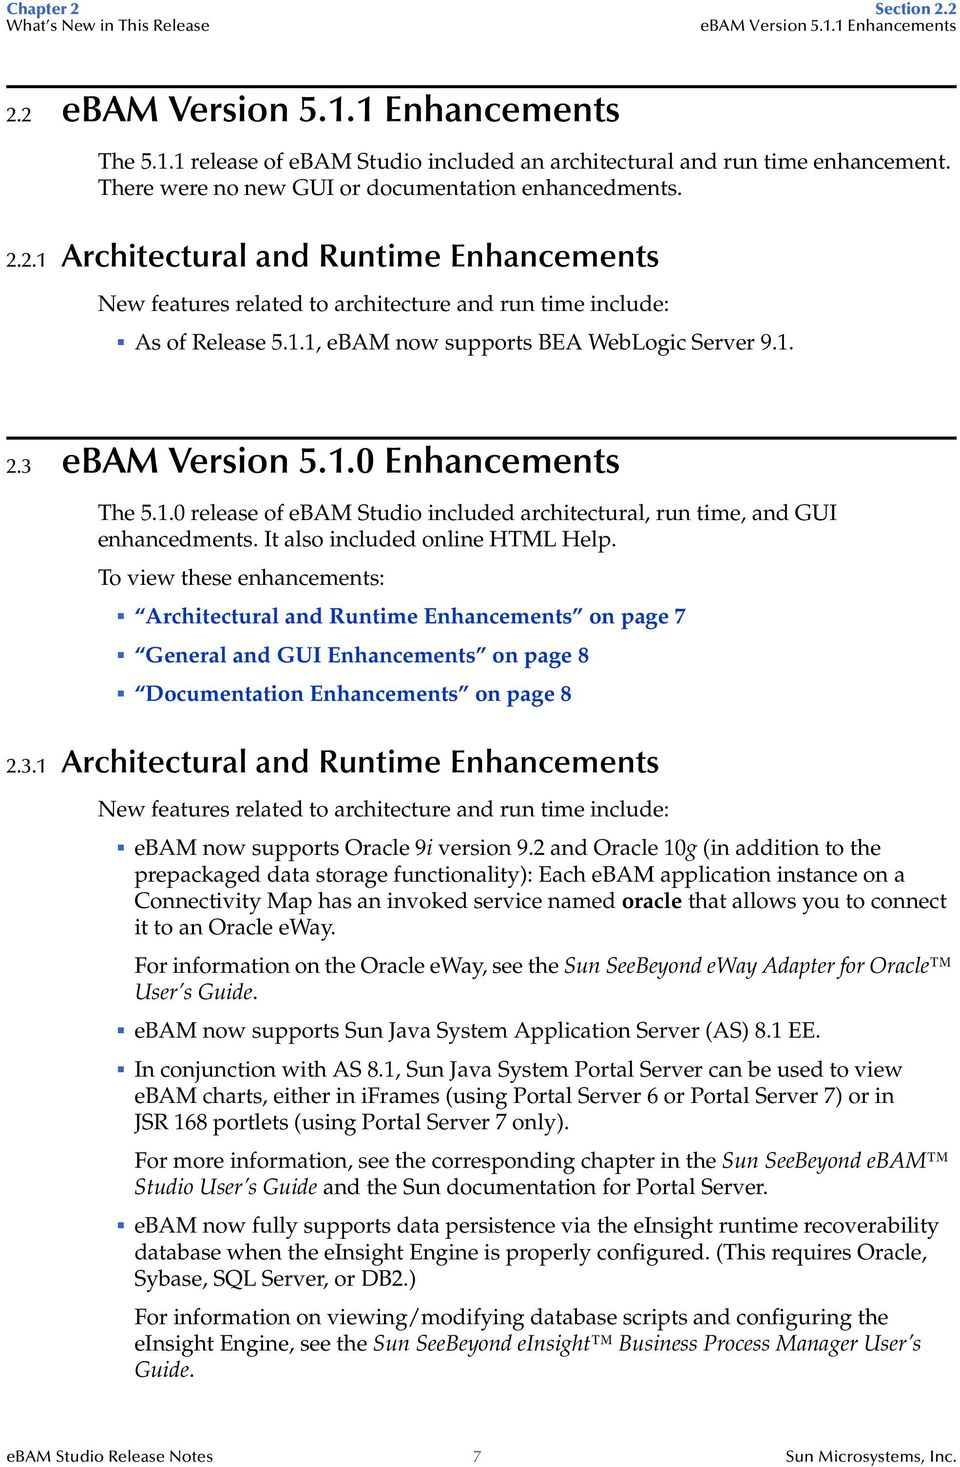 1. 2.3 ebam Version 5.1.0 Enhancements The 5.1.0 release of ebam Studio included architectural, run time, and GUI enhancedments. It also included online HTML Help.